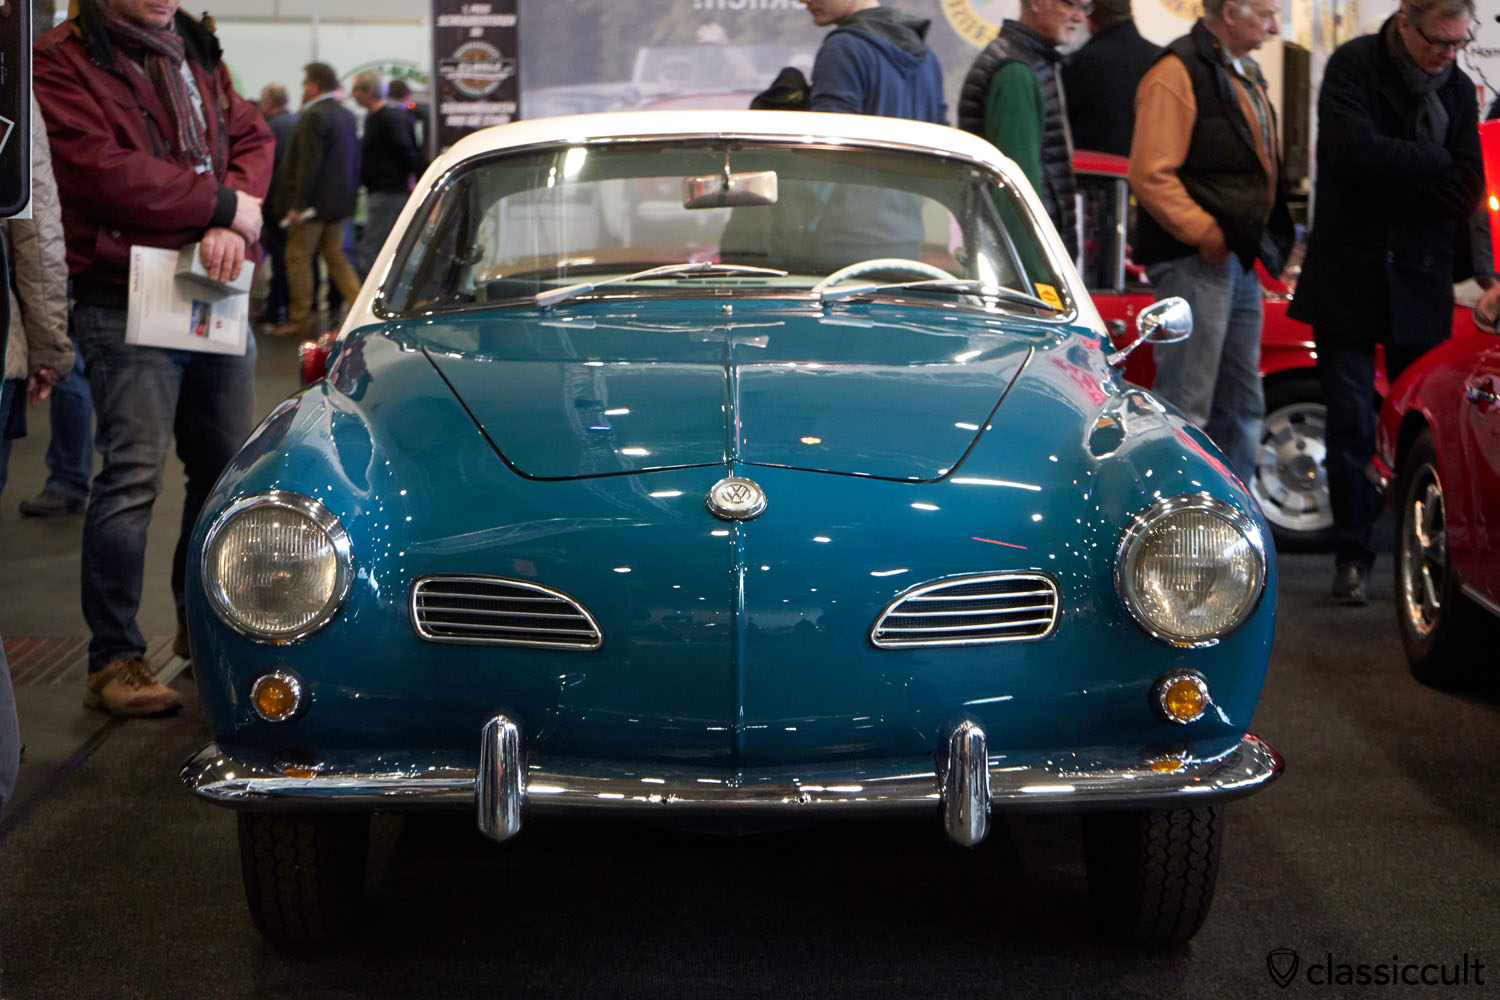 VW Karmann Ghia Coupe 1960, seeblau, 33700 EUR, CARRACHO CLASSICS